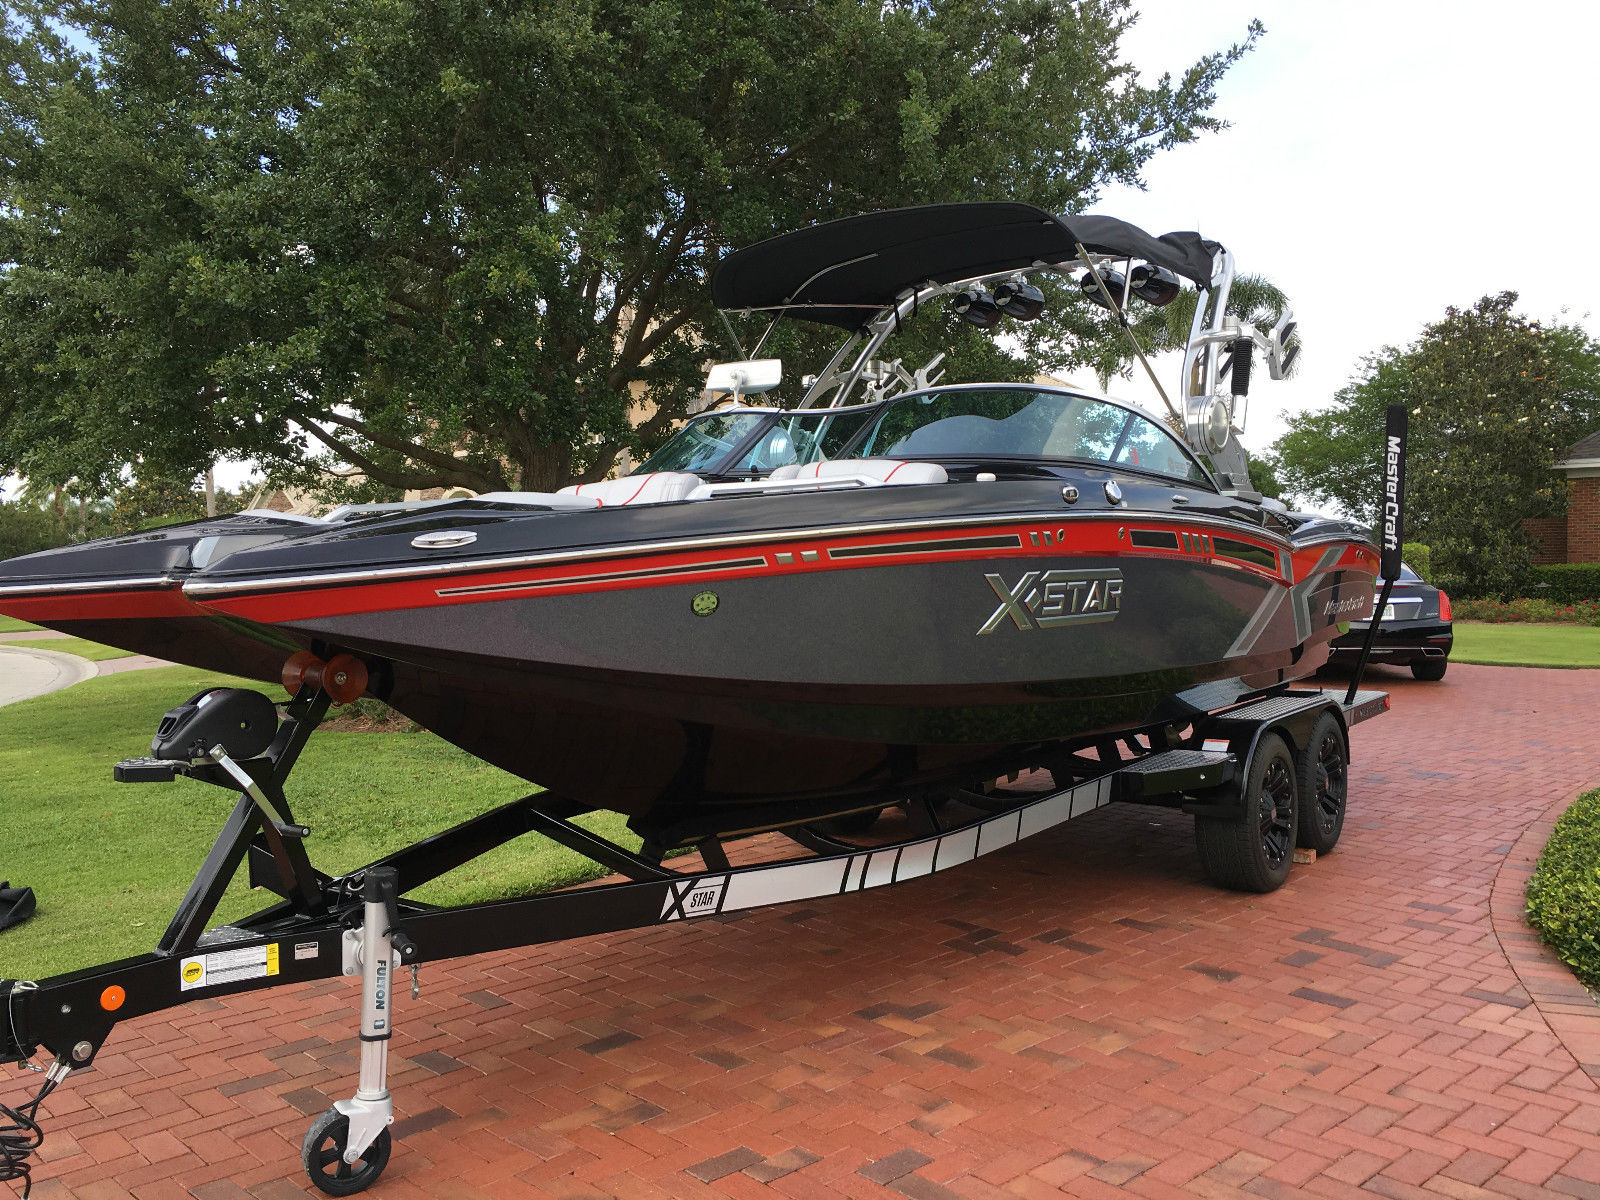 Mastercraft Xstar 2015 For Sale For 115950 Boats From